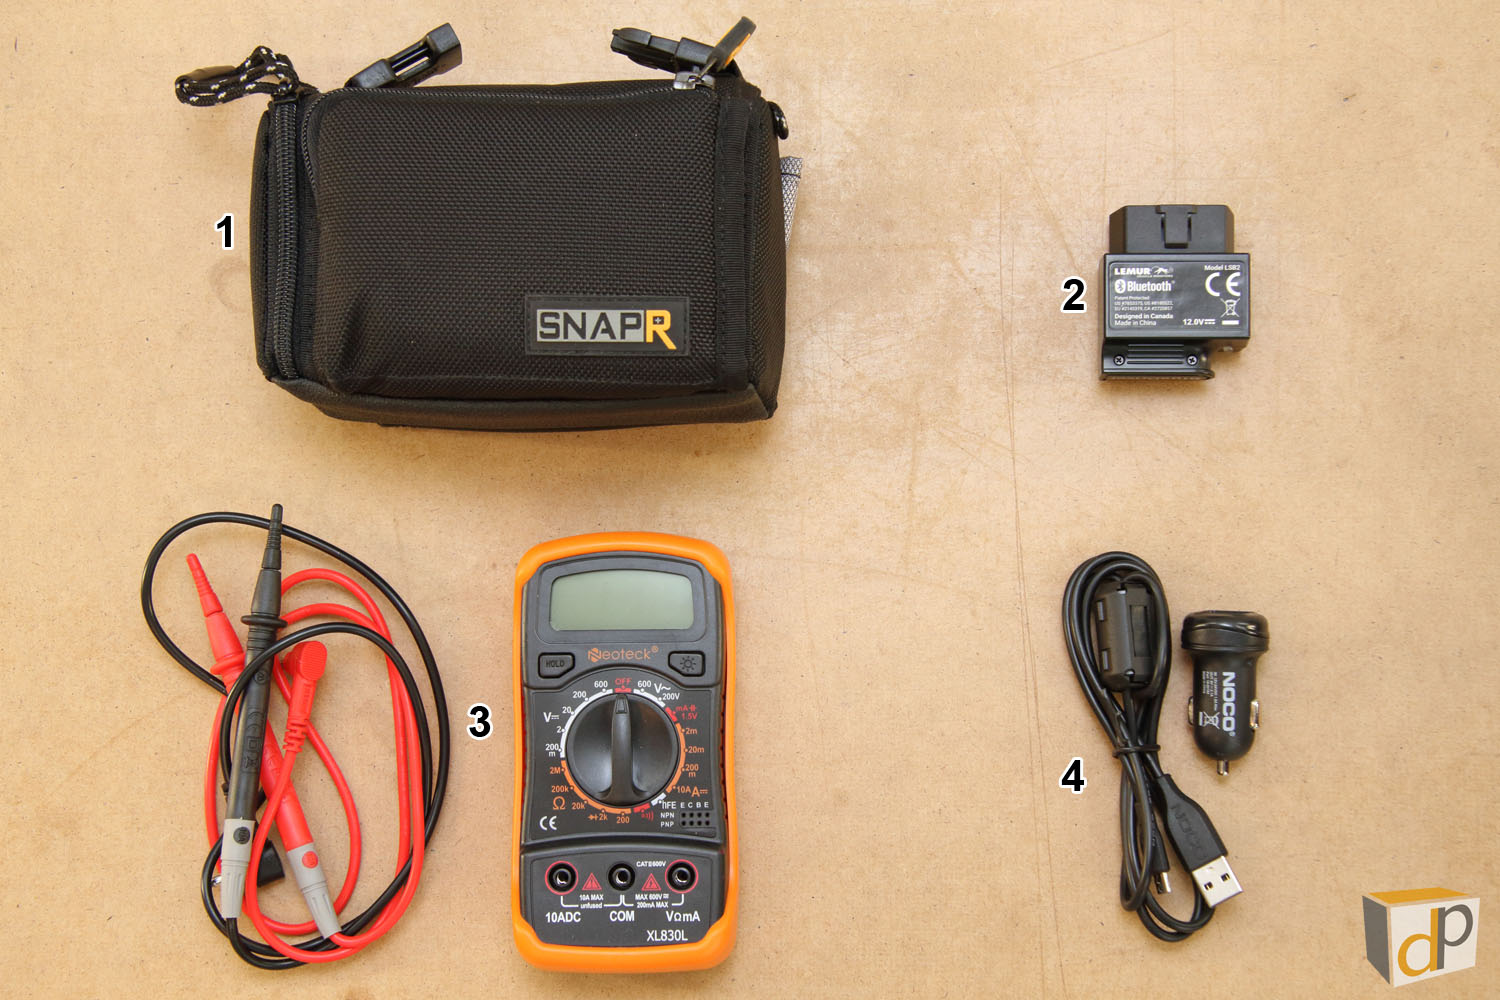 Photo #6 - Contents of Black SnapR Case (Item #6 in Photo #4)